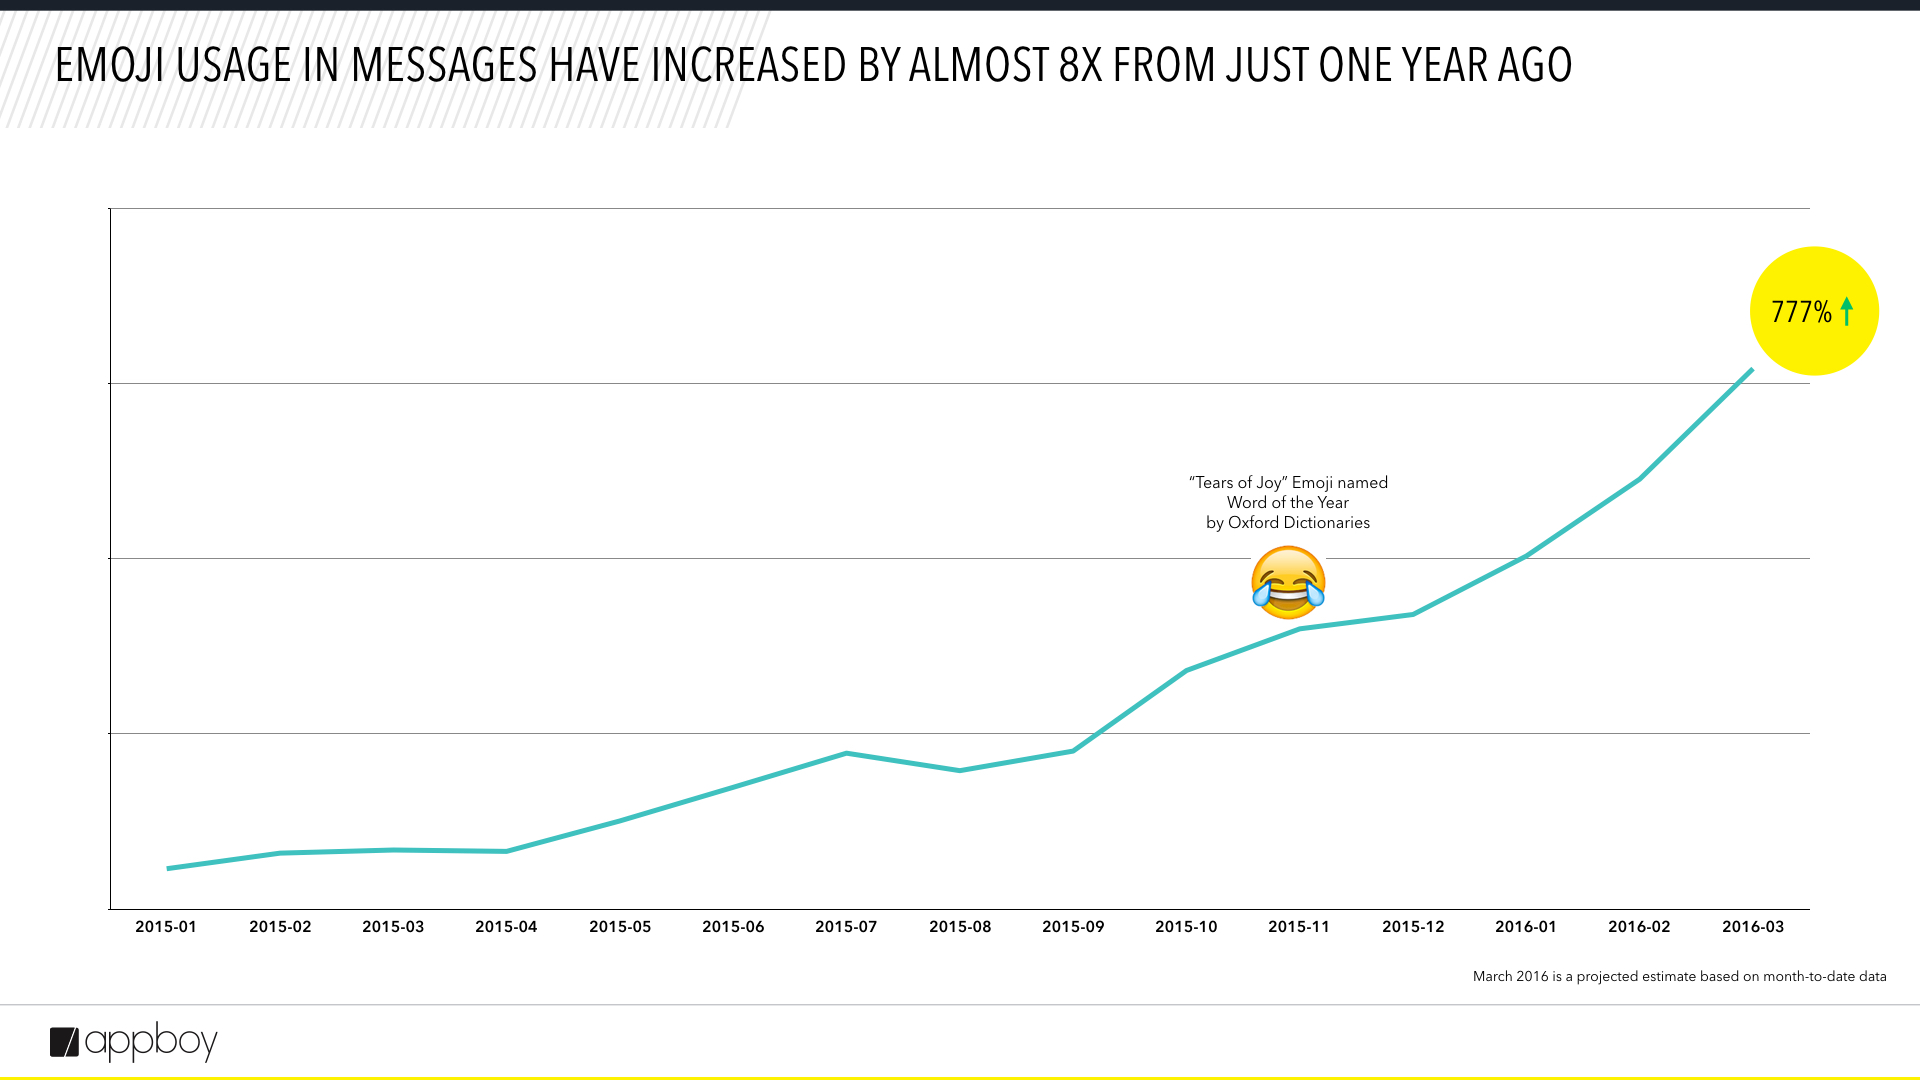 emoji year over year growth